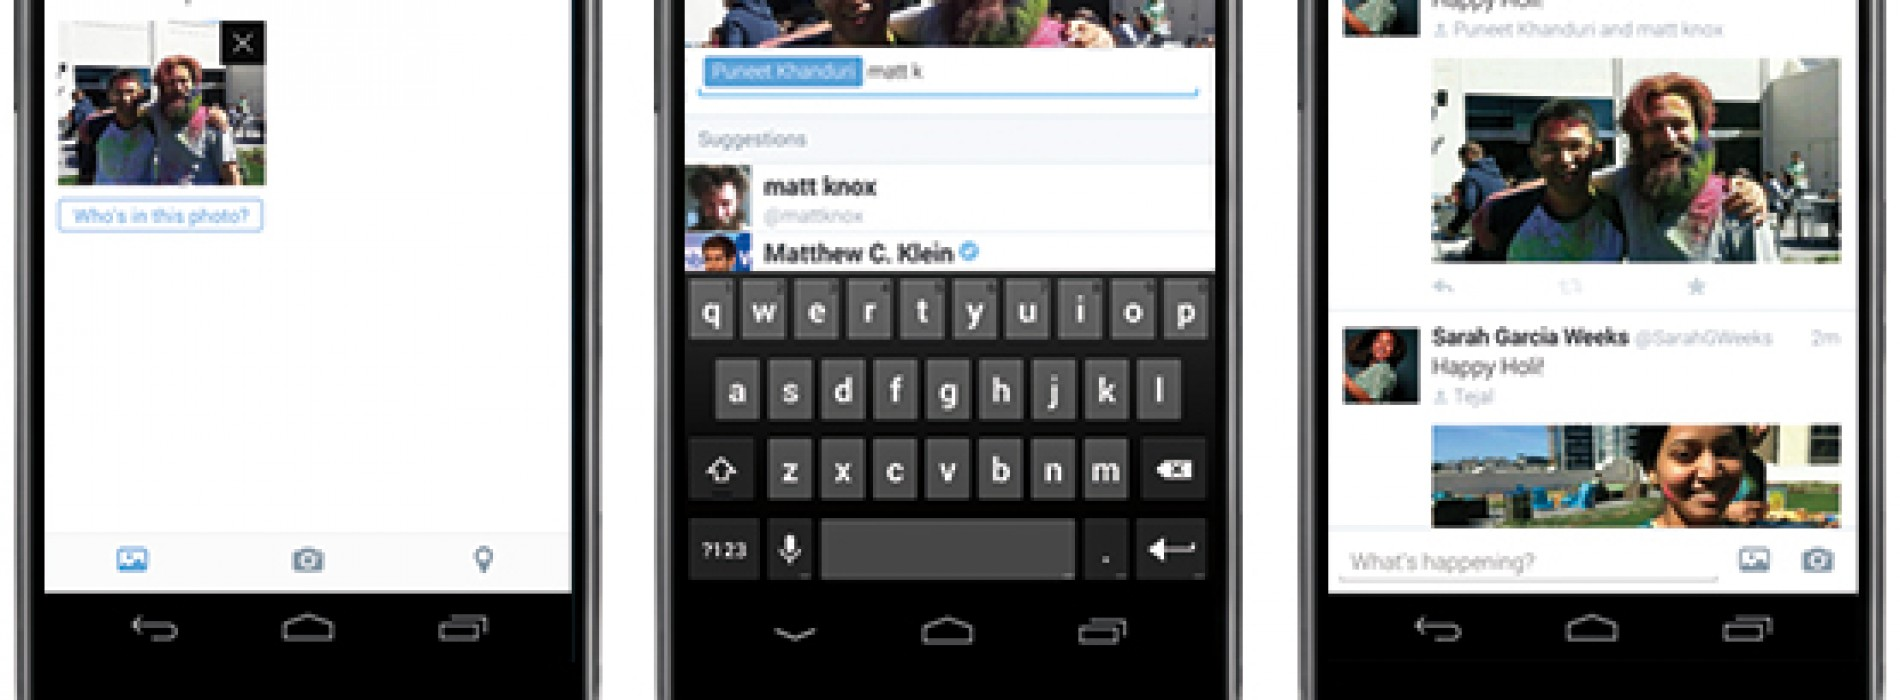 Twitter enhances photo experience for mobile apps